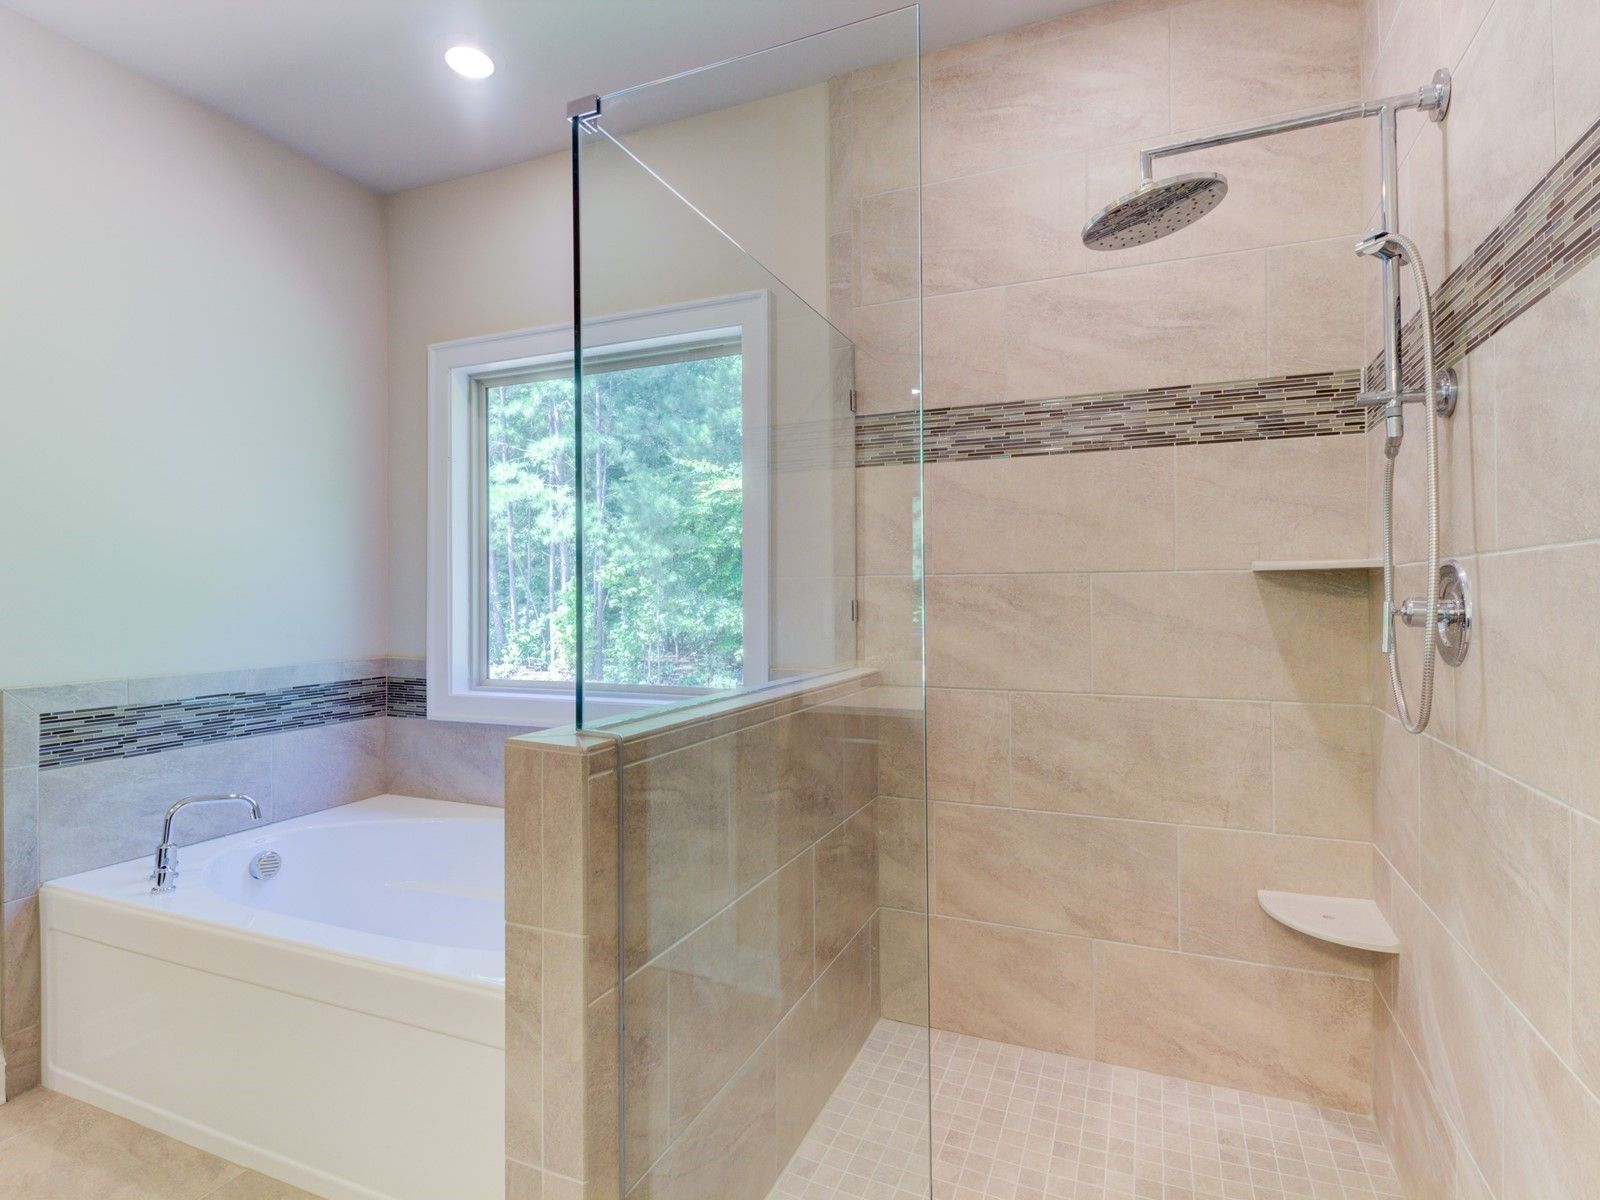 Bathroom featured in the Waterford Basement By Meritage Homes in Atlanta, GA